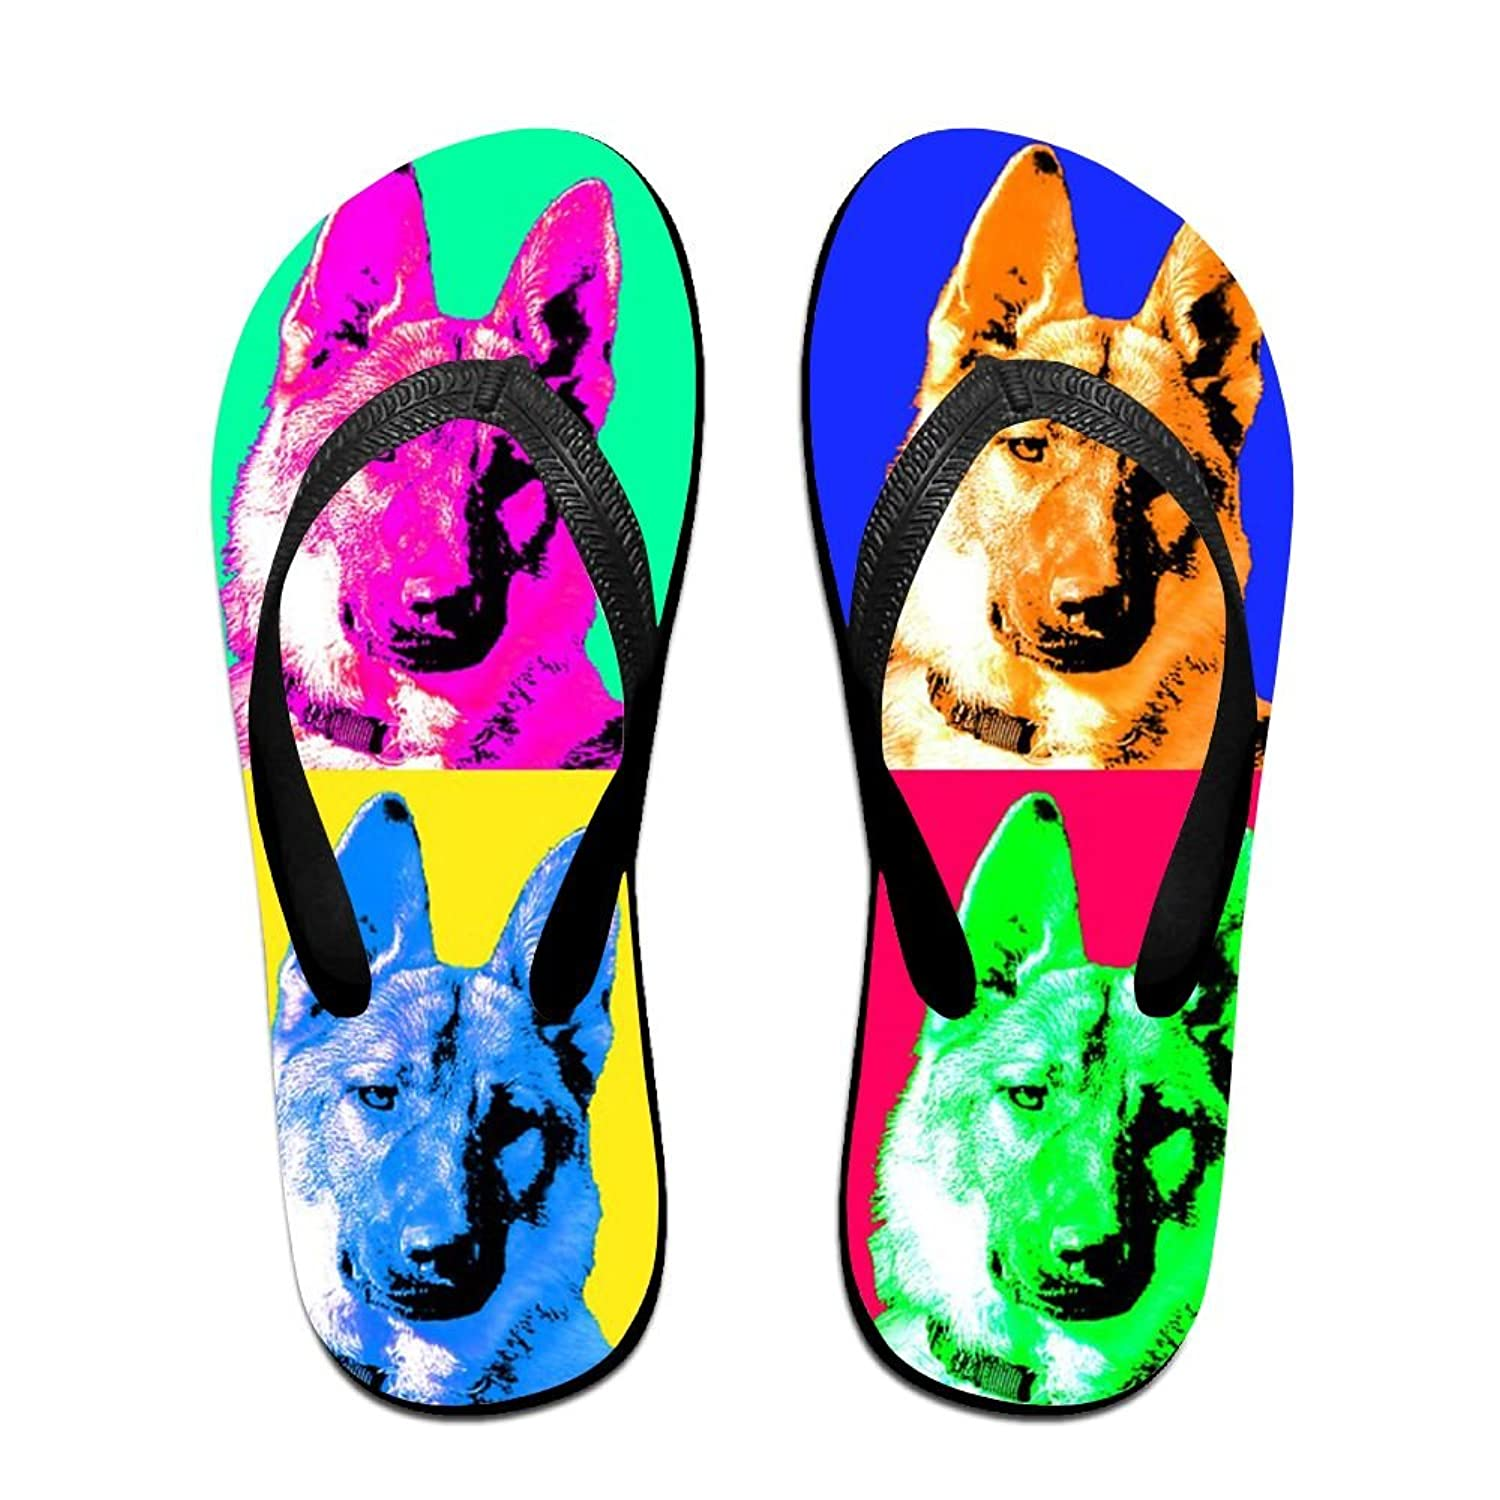 c6afa7aafc551 Pop Shepherd Comfort Beach Sandal Simple Flip Flops Outdoor Thong ...